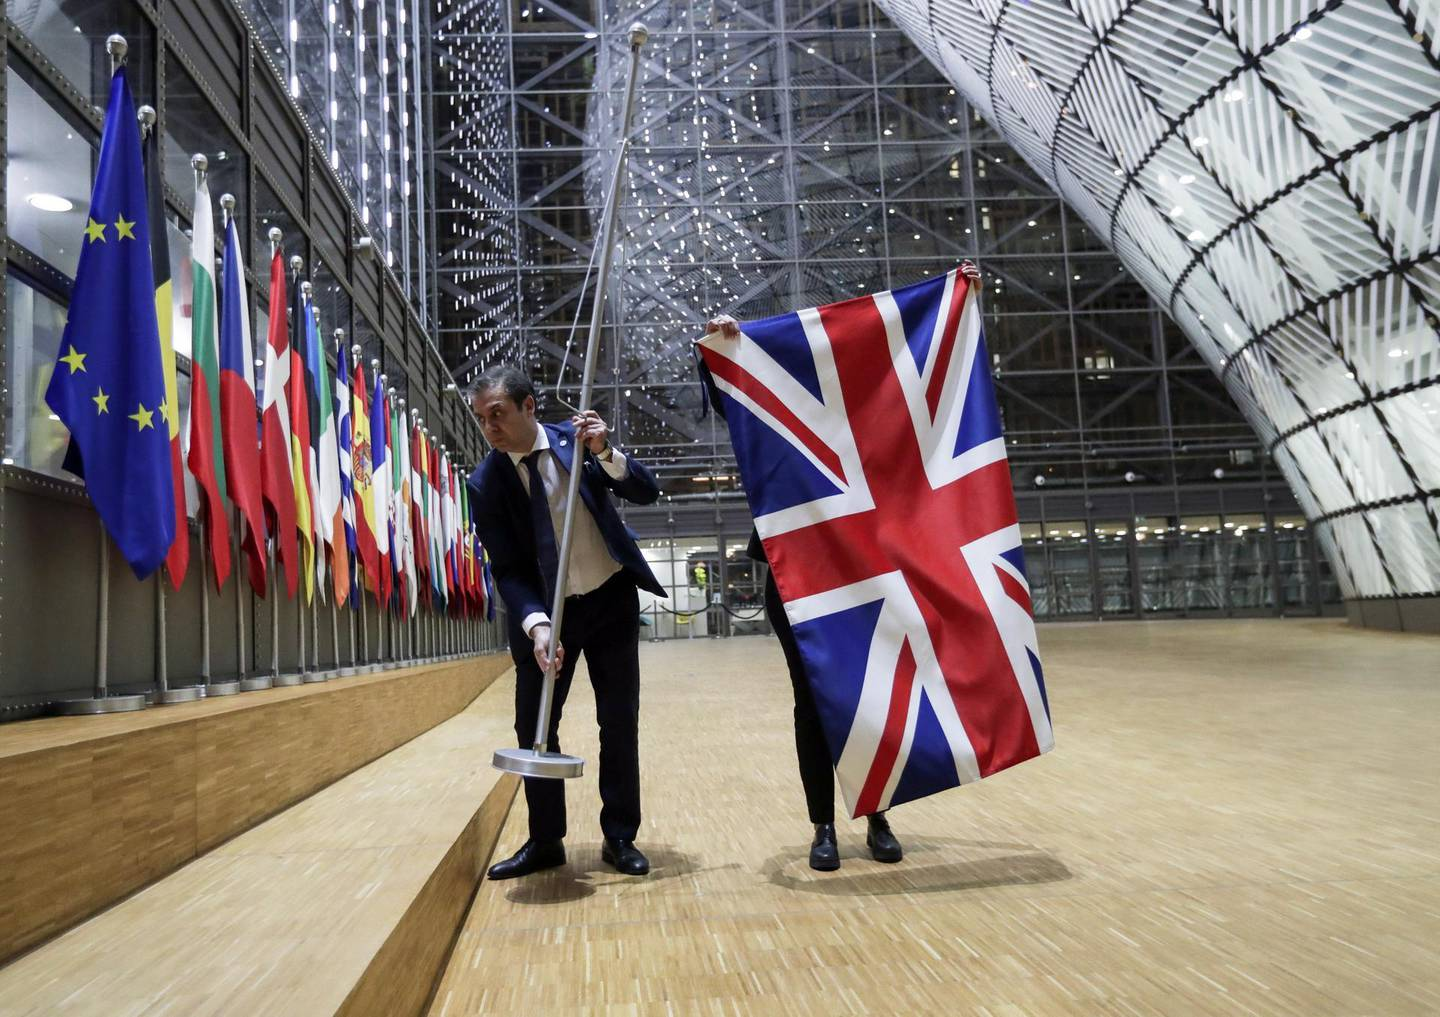 epa08881079 (FILE)  EU Council staff removed the Union Jack-British flag from the European Council in Brussels, Belgium, 31 January 2020 (reissued 13 December 2020). British and EU negotiators are re-engaging in Brussels 13 December 2020 for the final hours of the Brexit talks ahead of the latest deadline with both sides warning they are unlikely to reach an agreement.  EPA/OLIVIER HOSLET / POOL  ATTENTION: This Image is part of a PHOTO SET *** Local Caption *** 55838516